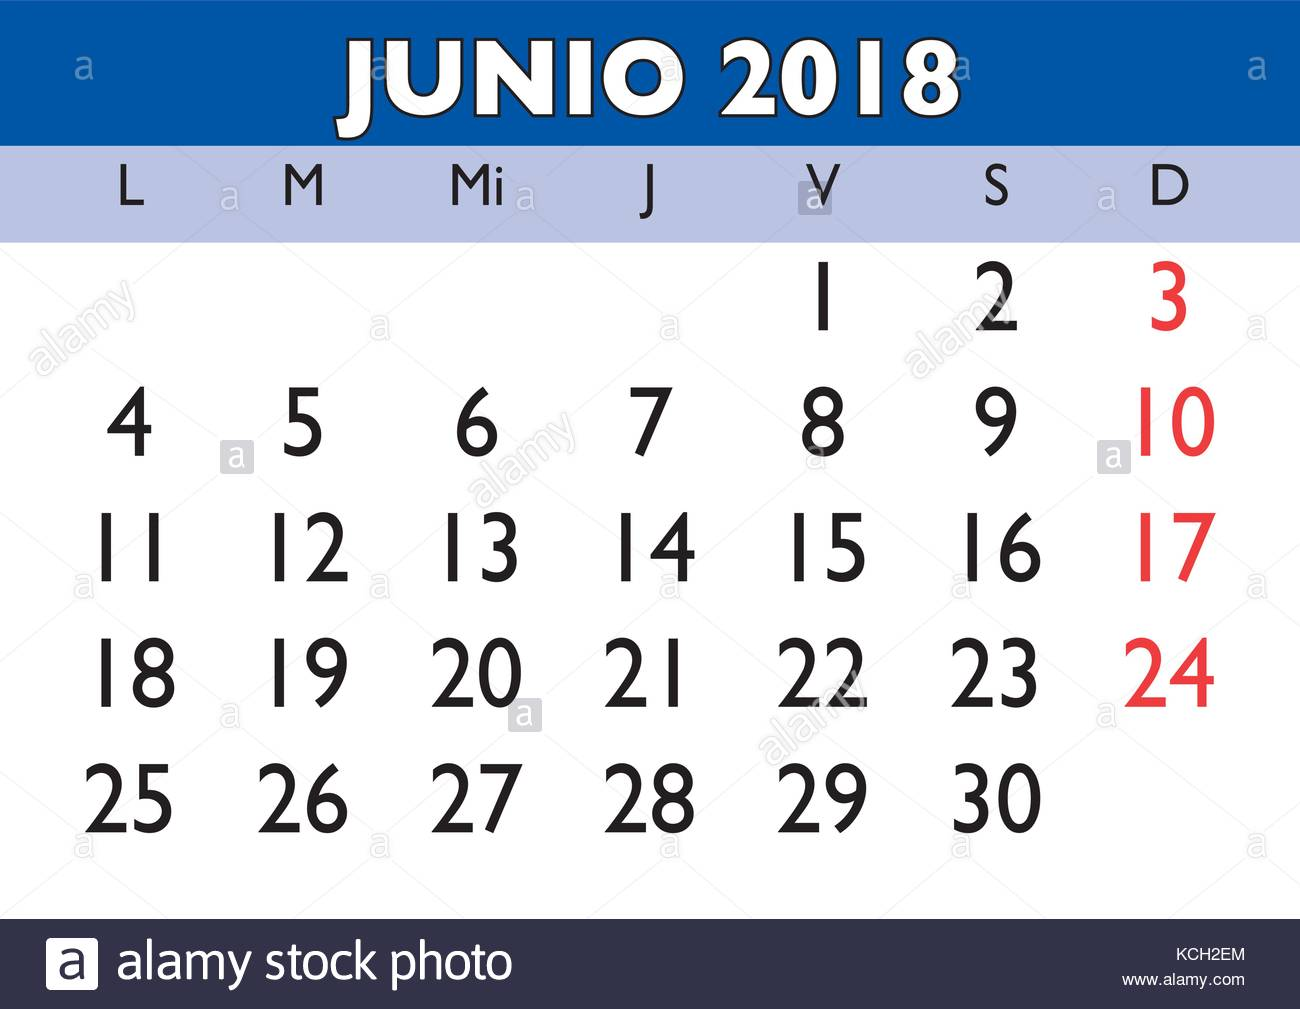 Calendario De Junio.June Month In A Year 2018 Wall Calendar In Spanish Junio 2018 Stock